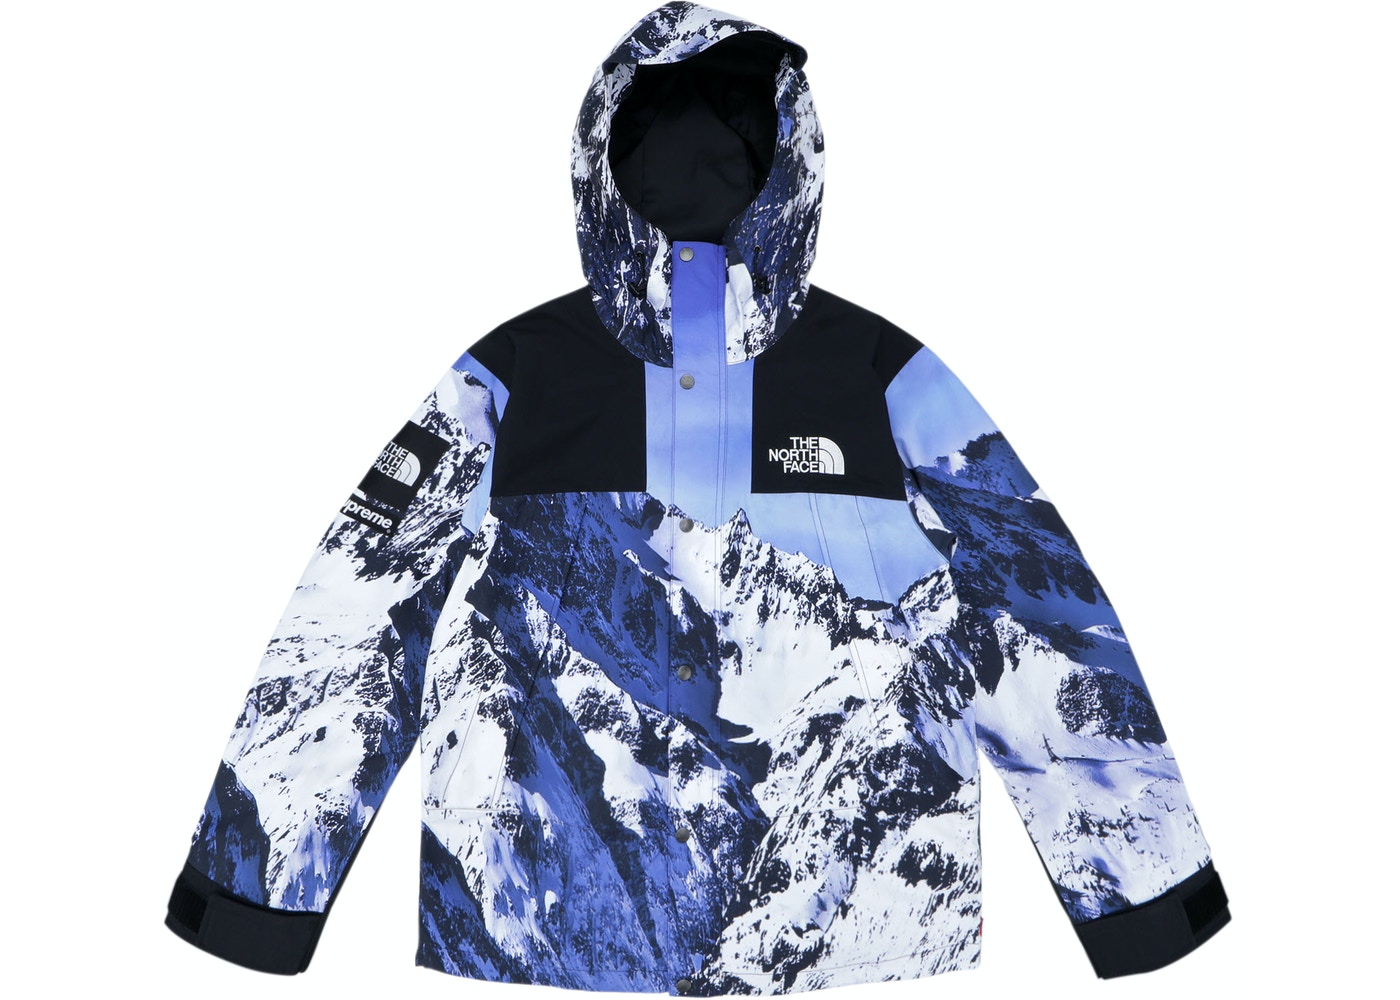 dcc7d86c51 Supreme The North Face Mountain Parka Blue White - TNF-MTN-FW17